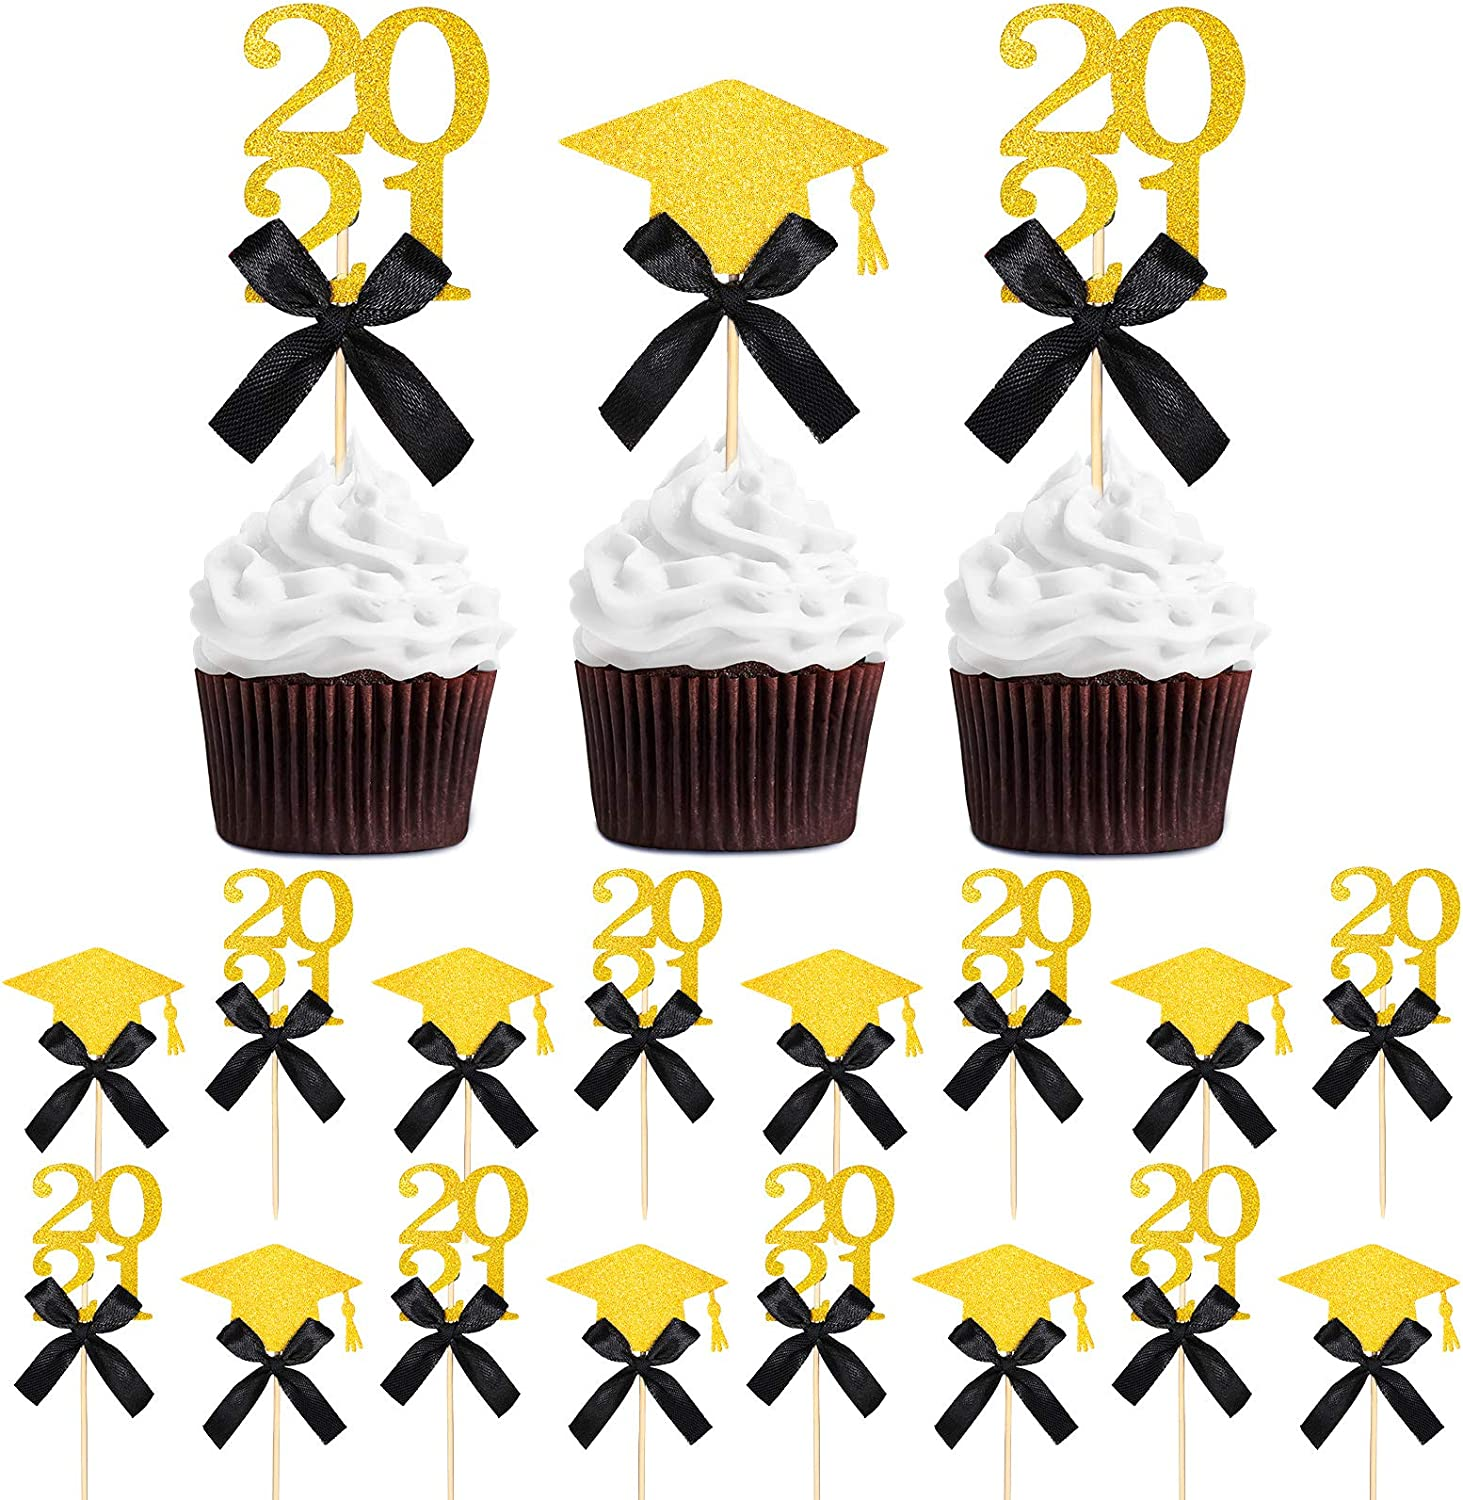 24 Pieces Graduation Cupcake Toppers 2021 Graduate Cake Topper Glittery Congrats Grad Food/Appetizer Picks for 2021 Graduation Party Decorations Grad Party Cake Decor Graduation Cupcake Decor (Black)